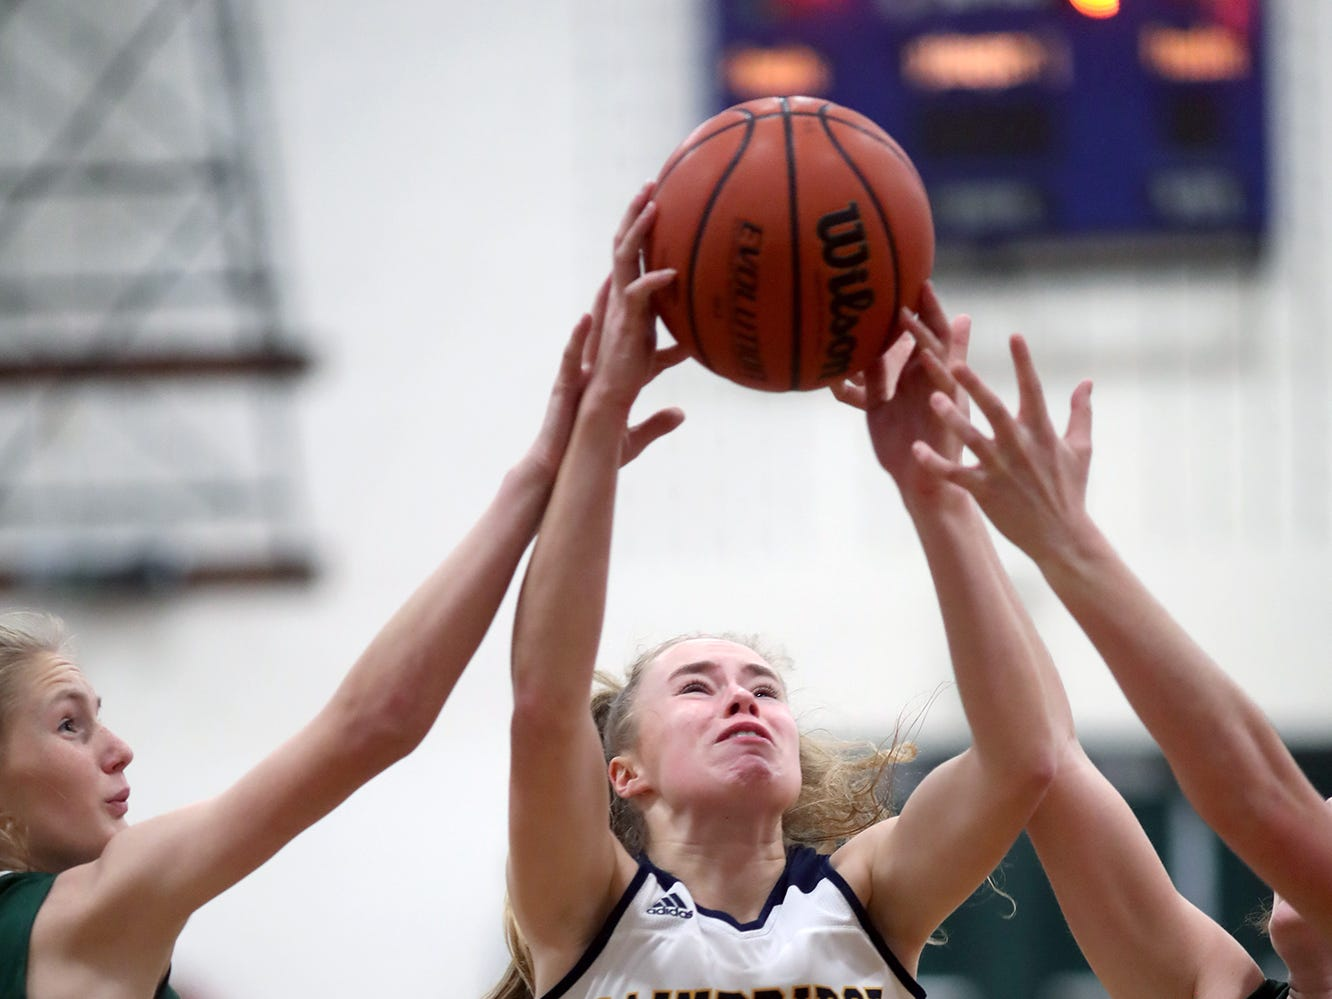 The Bainbridge girls basketball team played Port Angeles at Bainbridge, on Wednesday, Nov. 28, 2018. Bainbridge player Lea Wolf, grabs a rebound against Port Angeles.